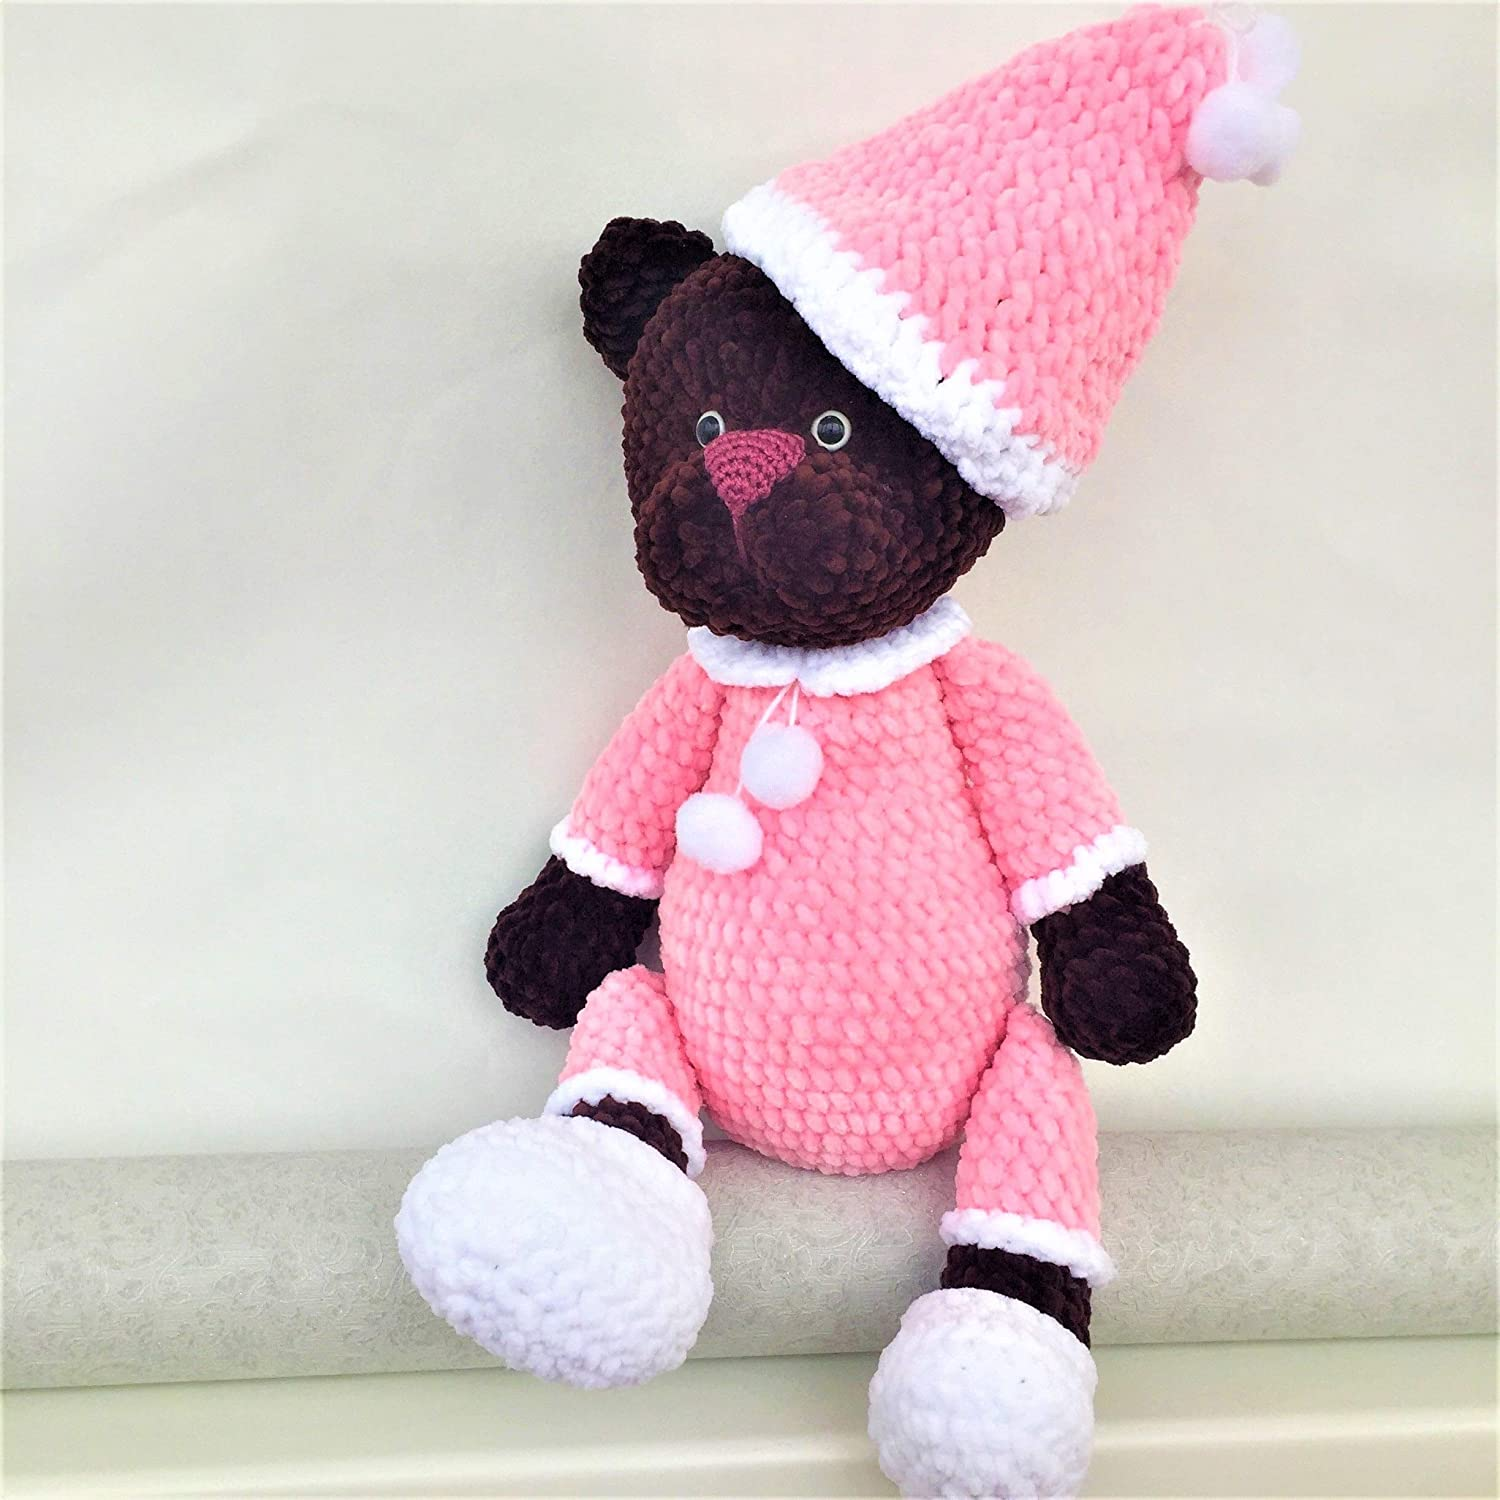 Knitted Toy Amigurumi Knitted Teddy Bear Handmade. Soft Teddy Bear in Pajamas Girl-bear as a Gift to the Child